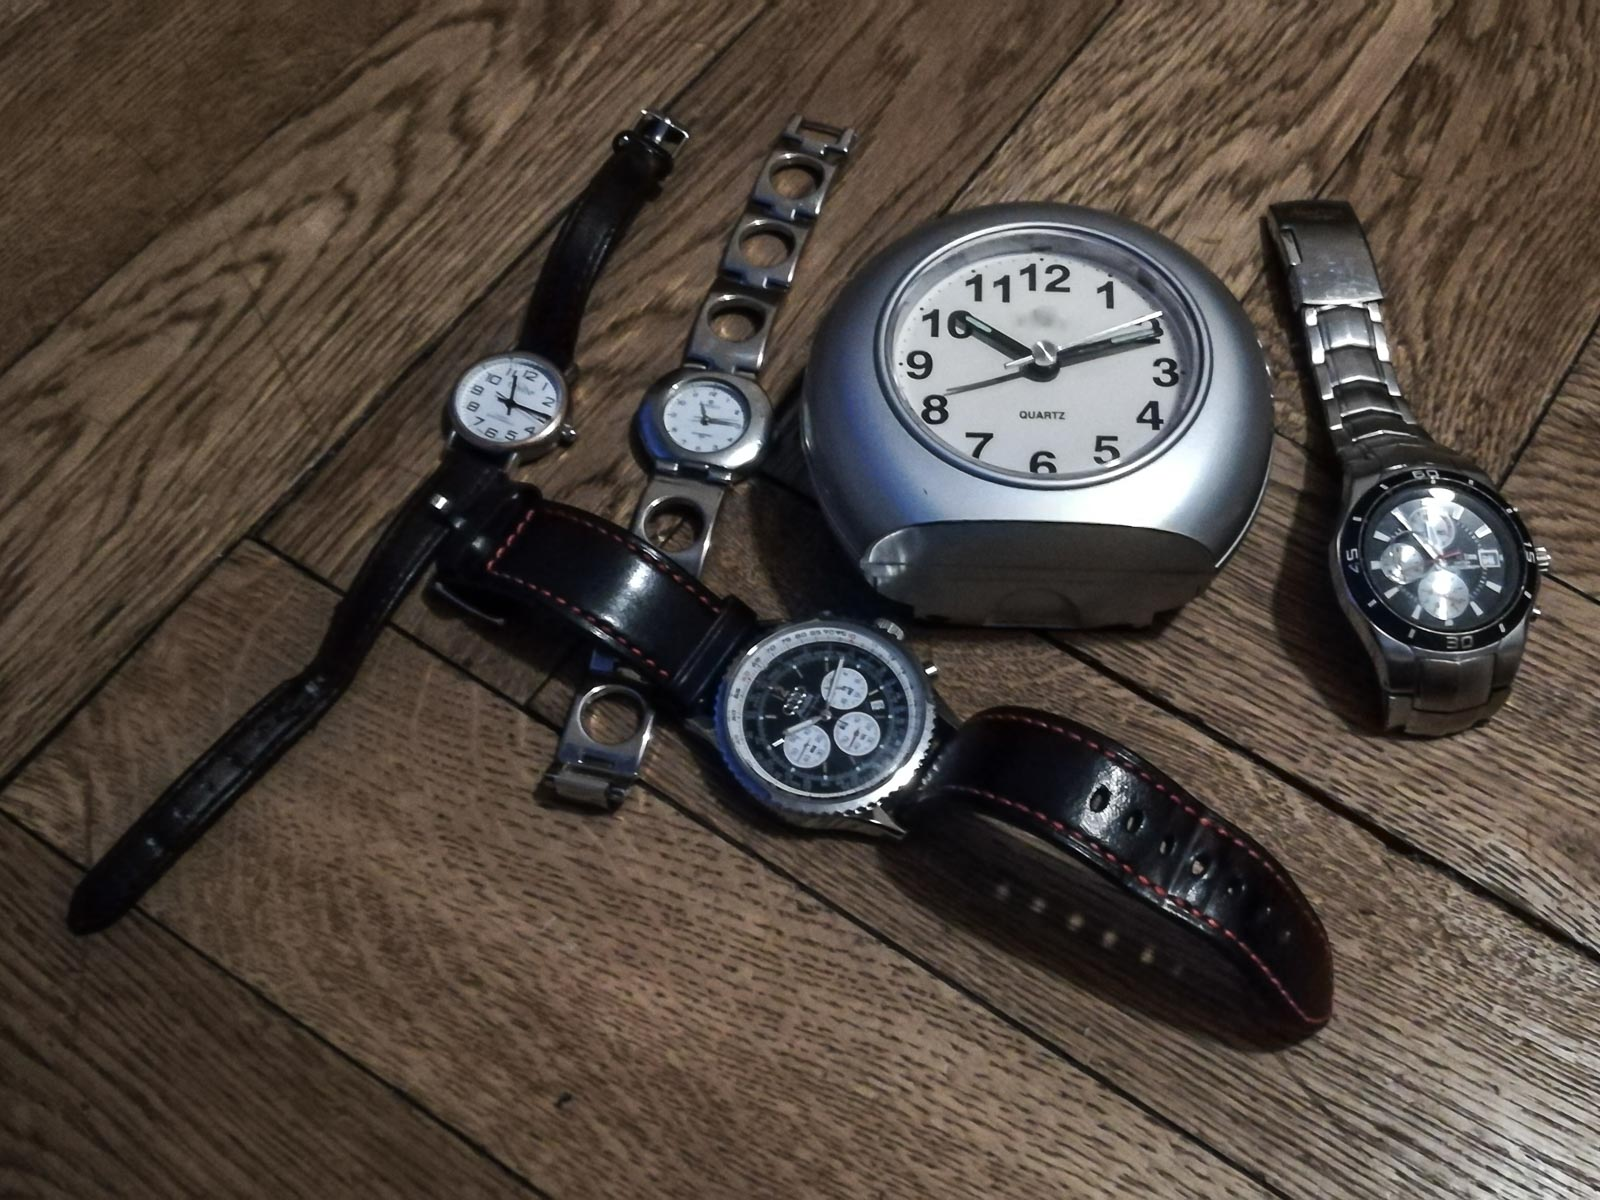 Clocks and watches, photo: Jakub Wozniak/Tricity News